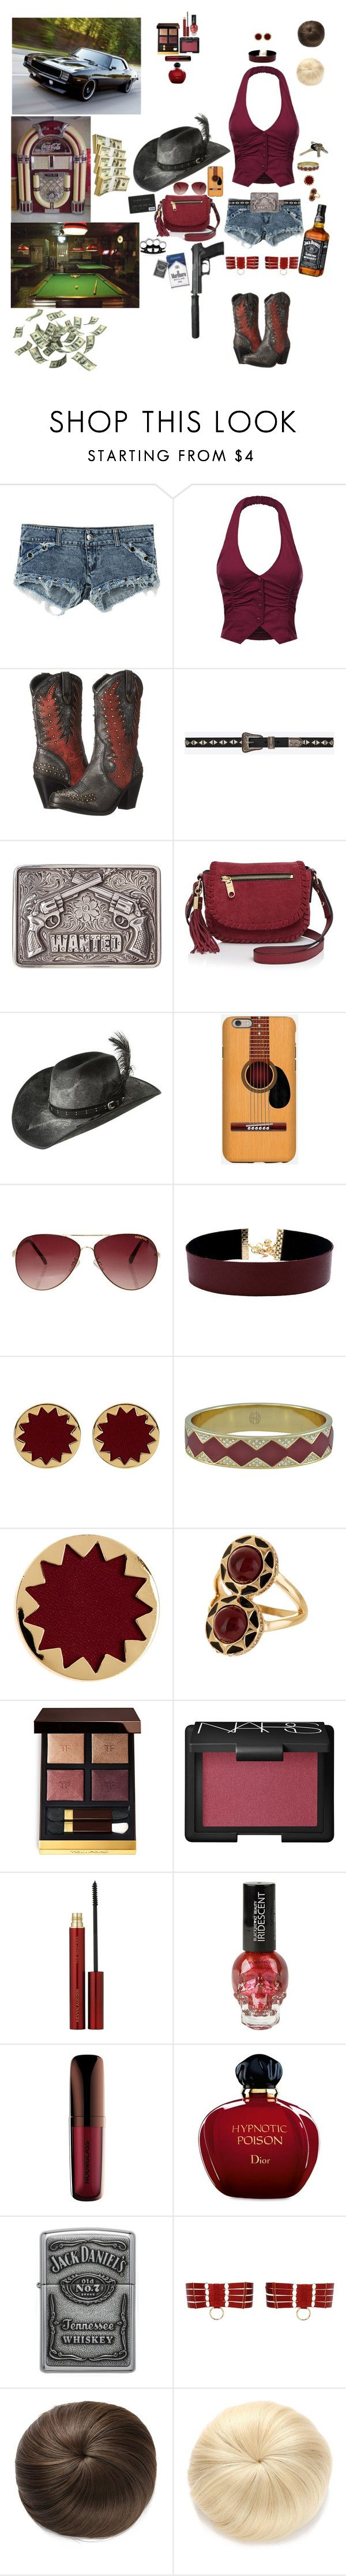 """""""Fastest Girl In Town"""" by blackmagicmomma ❤ liked on Polyvore featuring Dingo, Yves Saint Laurent, M&F Western, Milly, Bailey Western, MINKPINK, Vanessa Mooney, House of Harlow 1960, Tom Ford and NARS Cosmetics"""